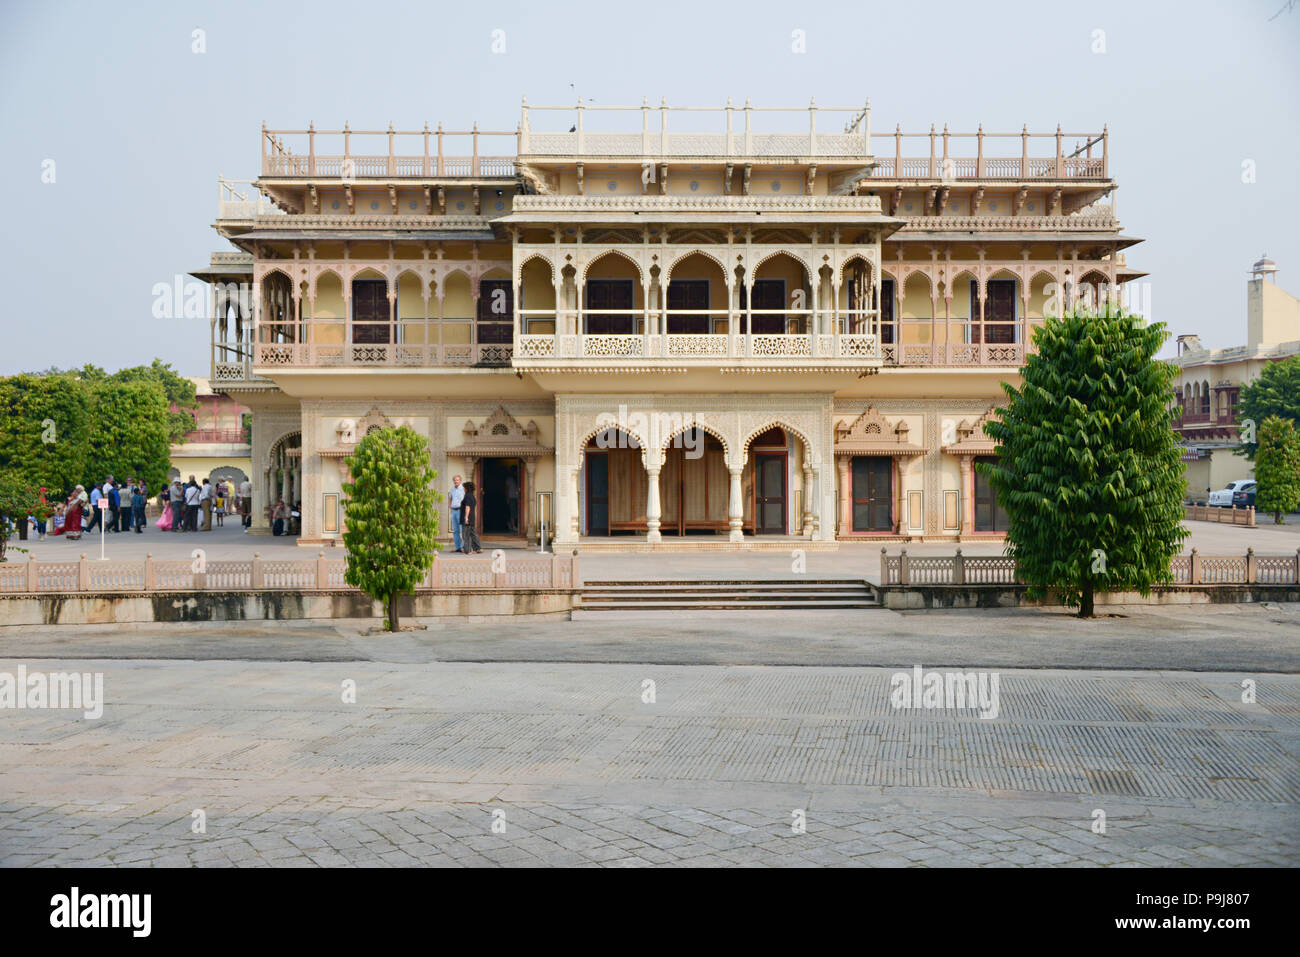 City Palace and Chandra Mahal building in Jaipur Rajasthan India Stock Photo